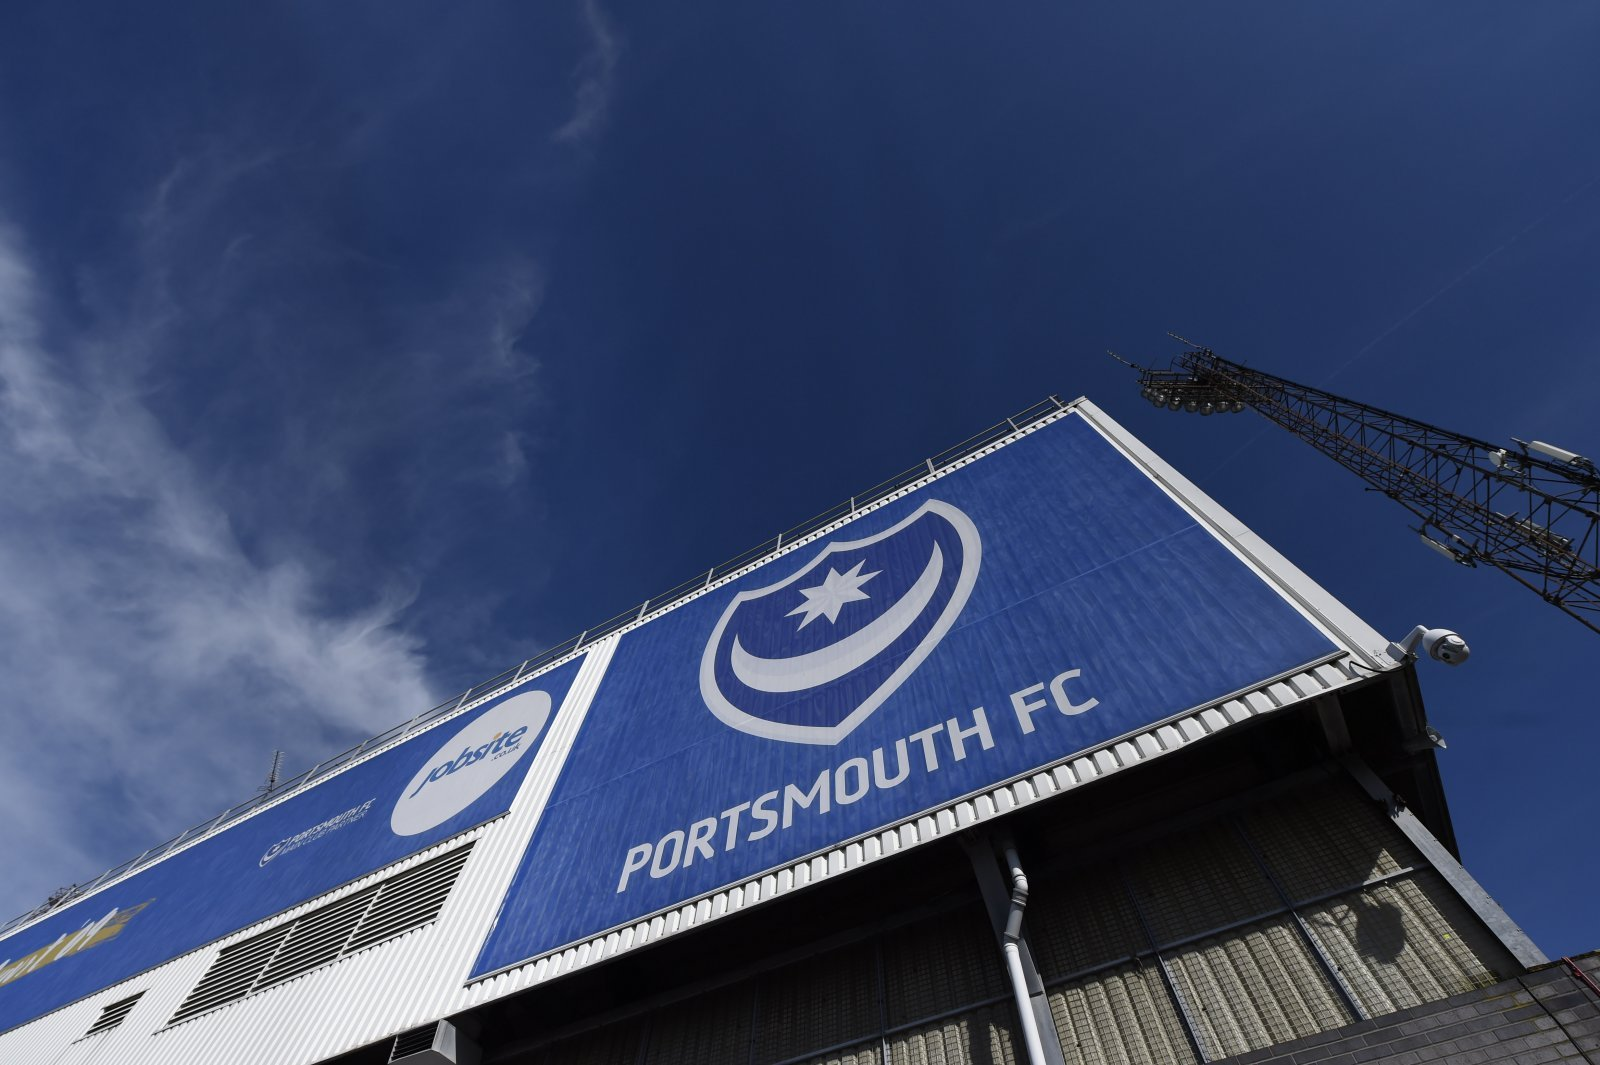 Portsmouth: These Pompey fans couldn't help but complain after 4-1 league win